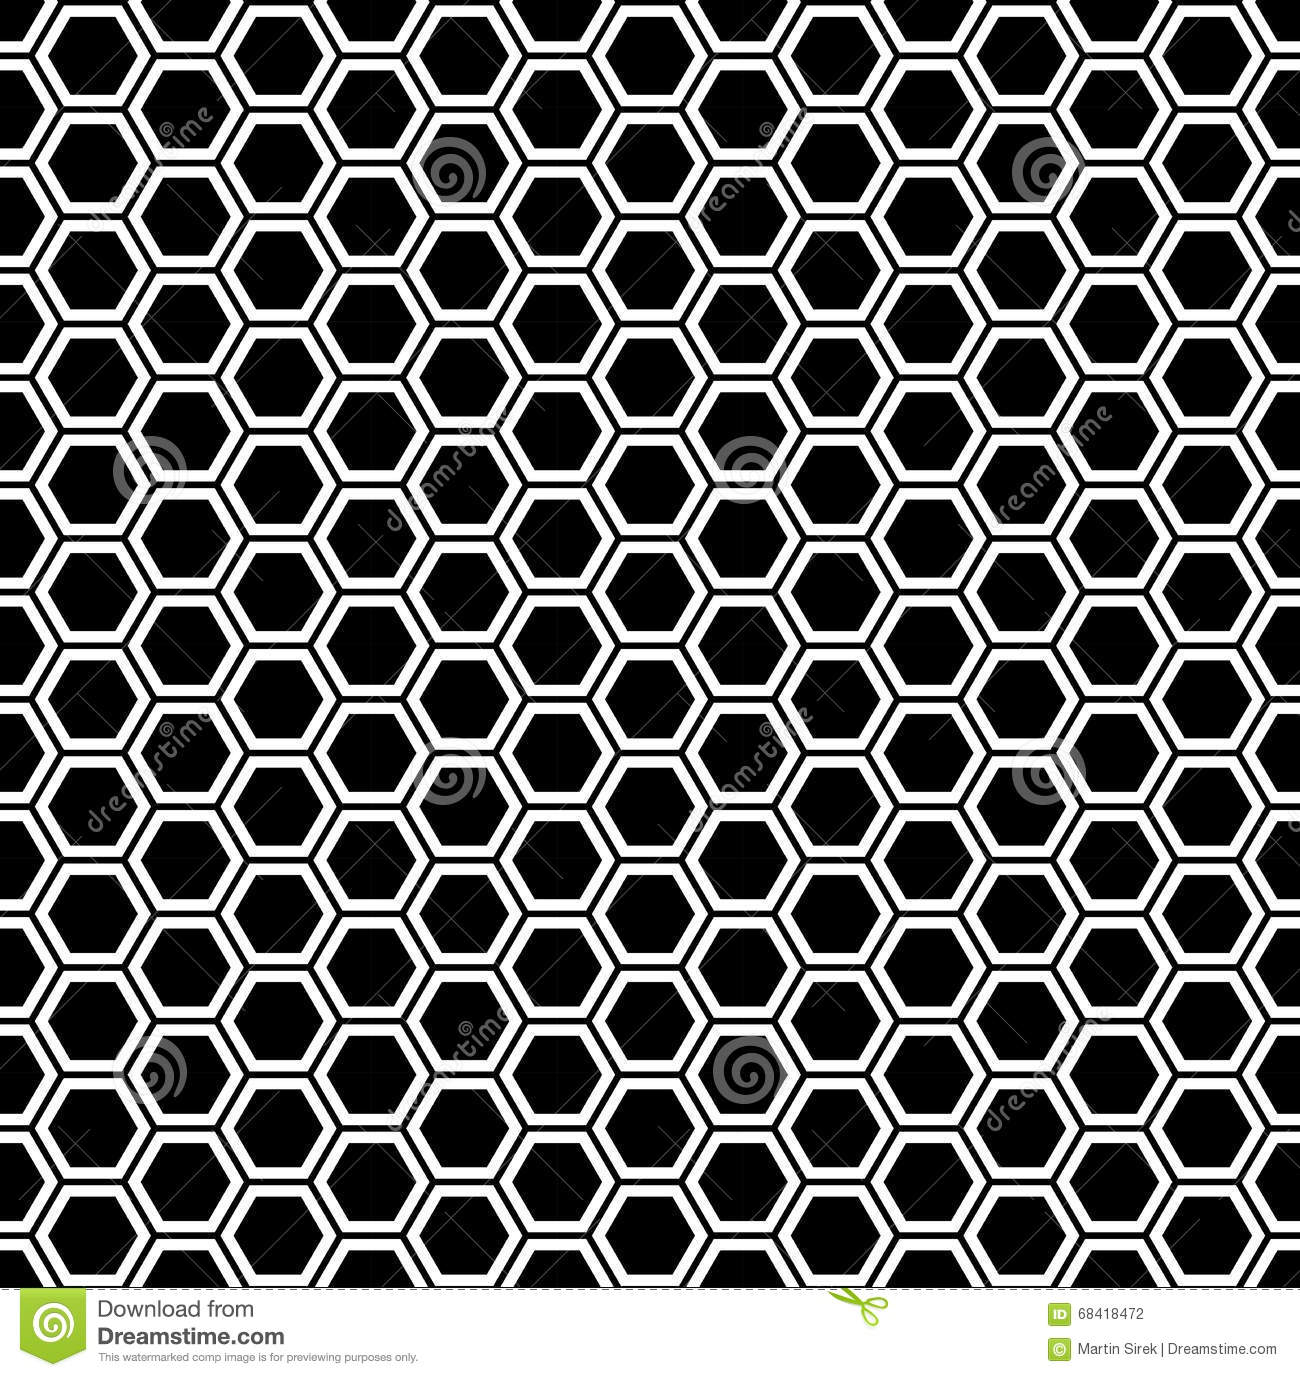 how to draw honeycomb pattern